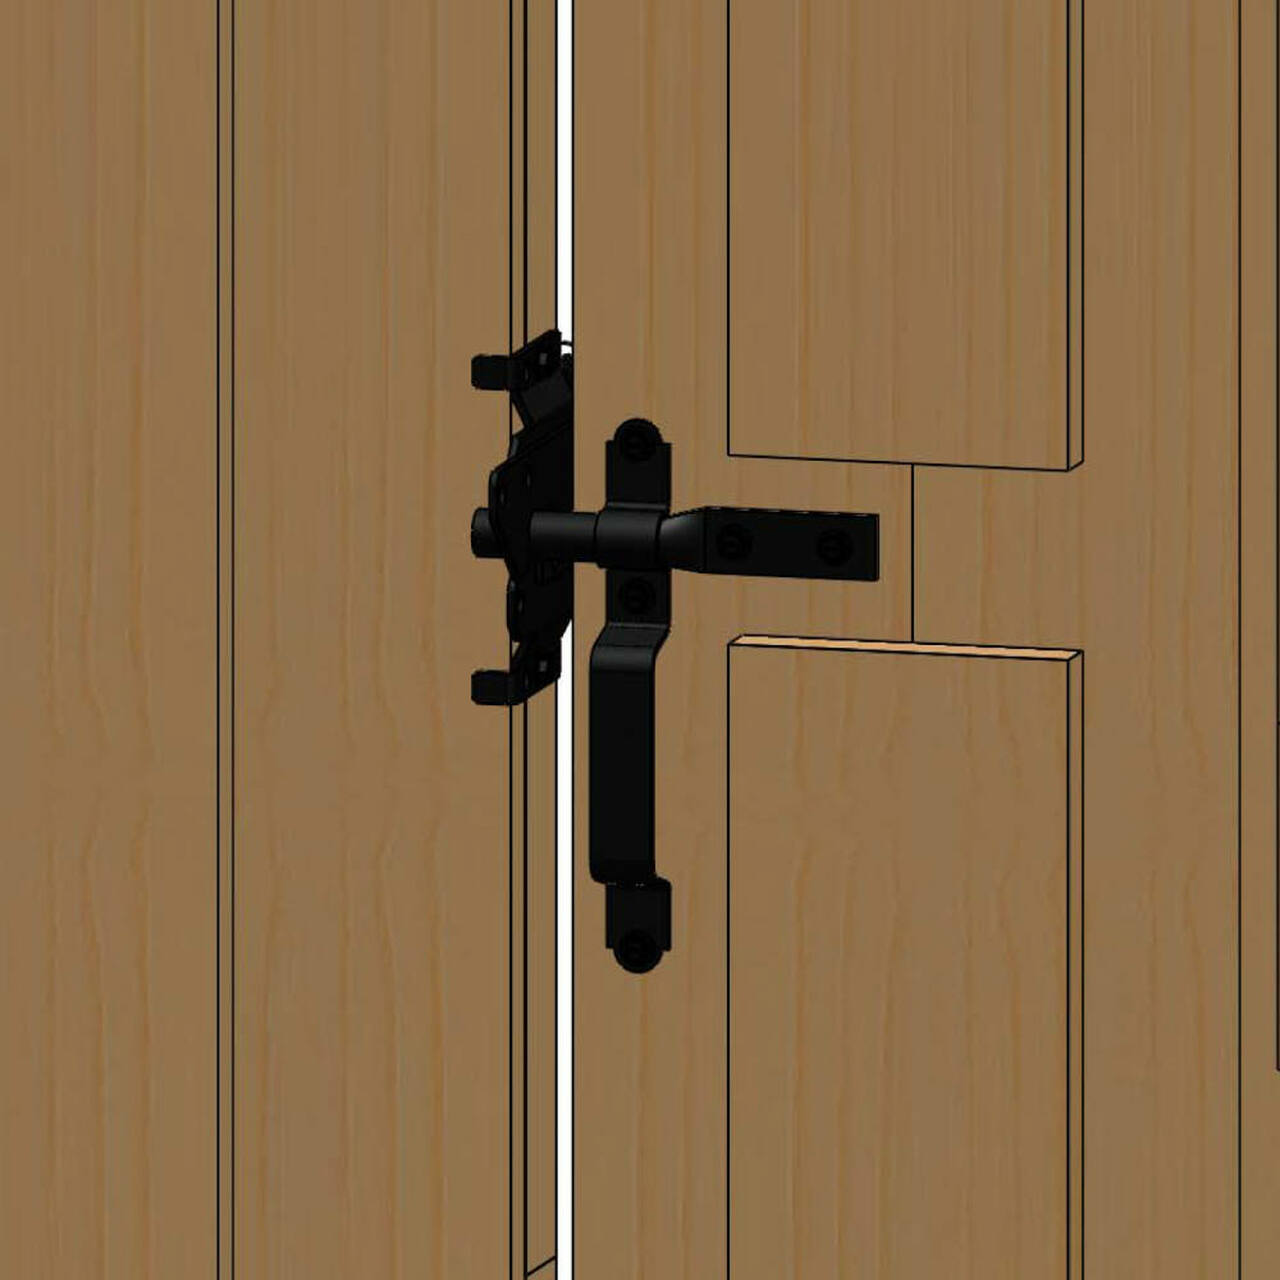 Typical Installation for the OZCO Ornamental Wood Ties Gate Latch